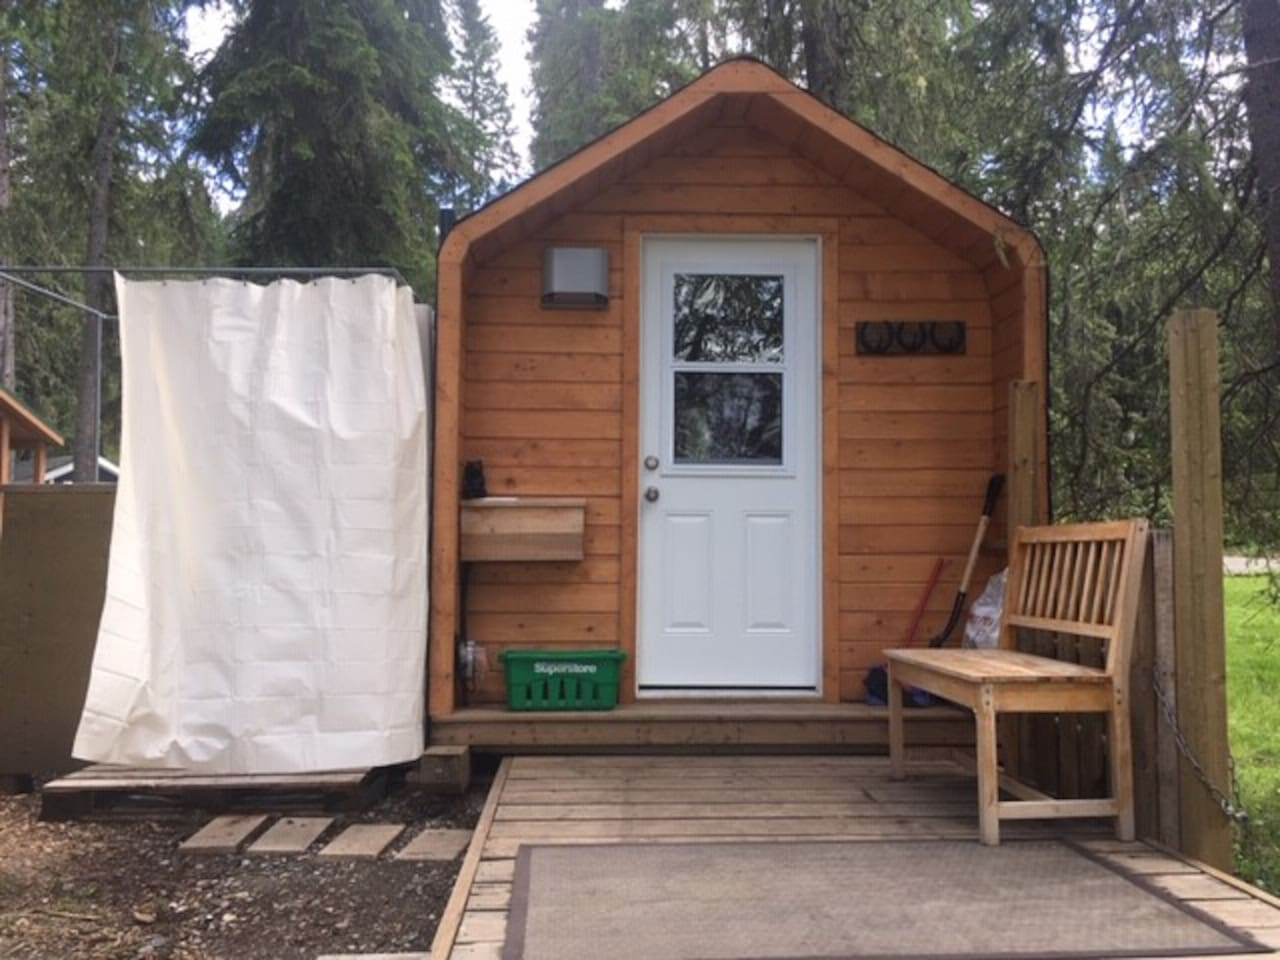 Heated 8 x 16 cabin.    Outdoor shower(limited hot water). BBQ. Fire pit. Surrounded by  trees with your own private deck and river view.   Steps away from amazing hiking and a 15 min walk to the Hamlet with shops, pubs, and  restaurants.